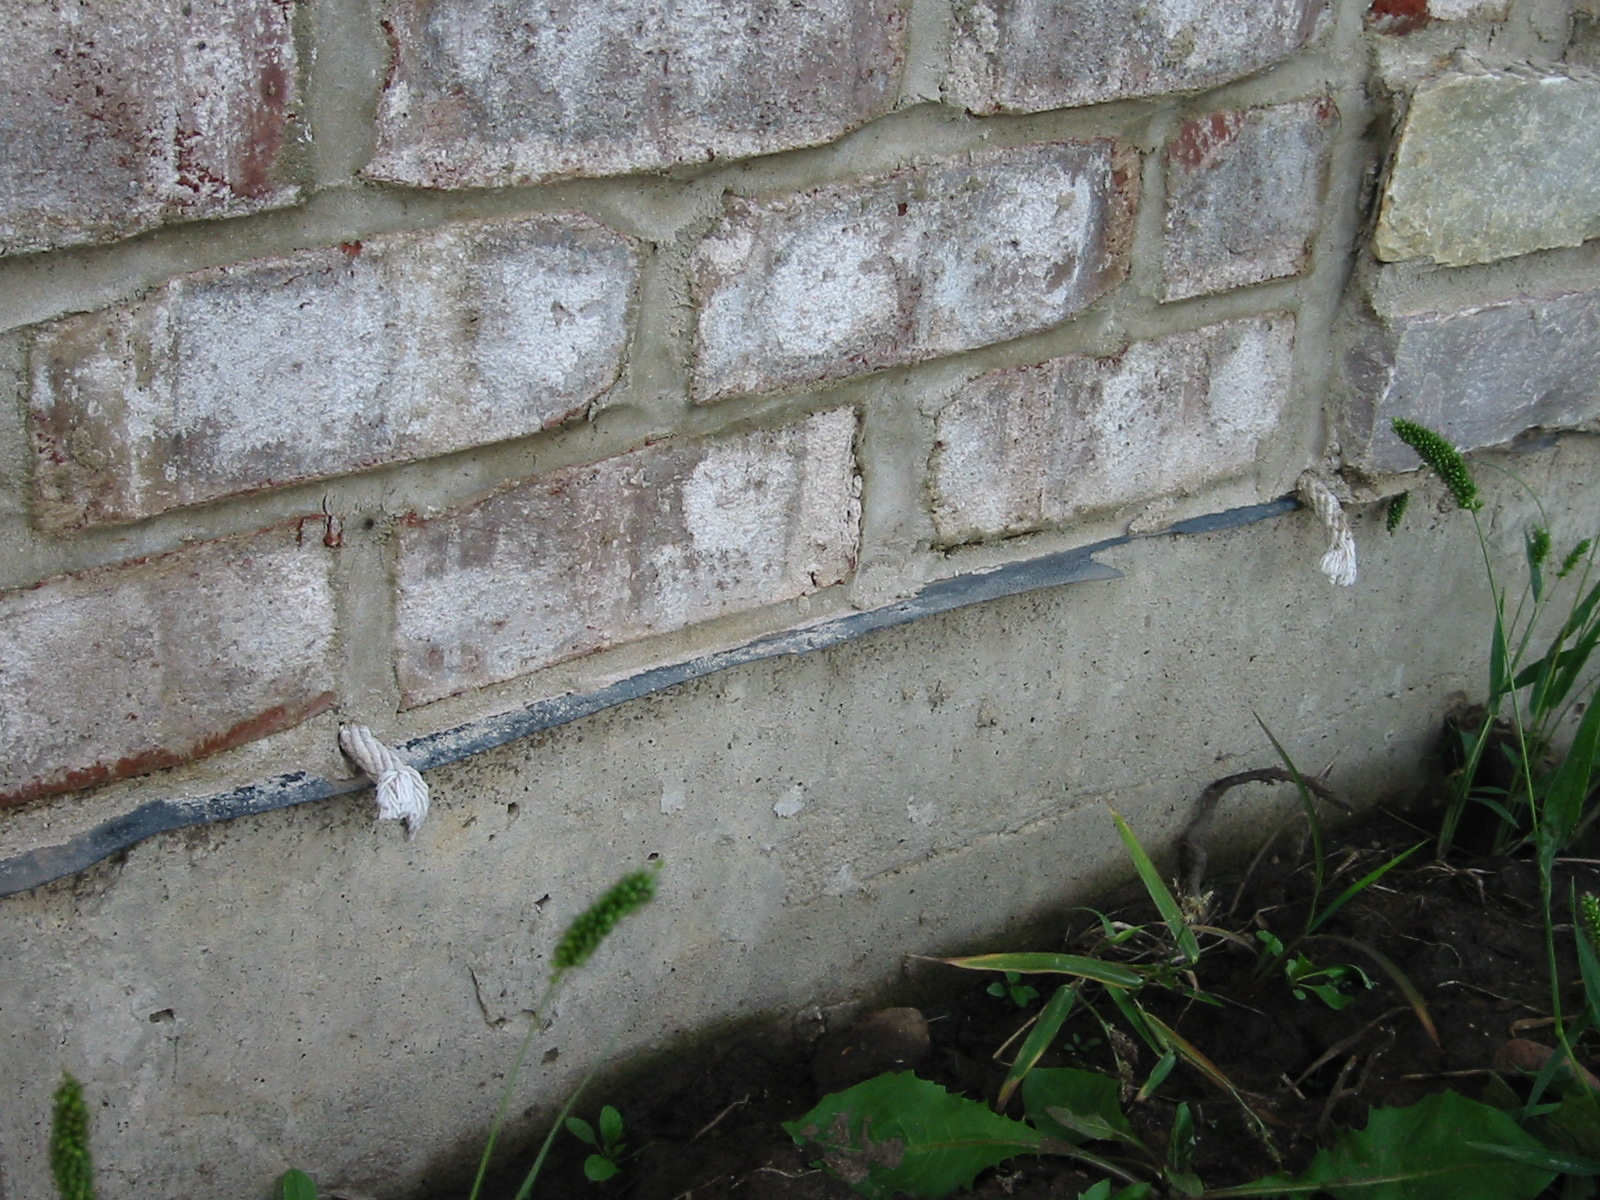 Weep holes: Rope inserted in the head joist between bricks will allow water to weep out of the base of the wall assembly